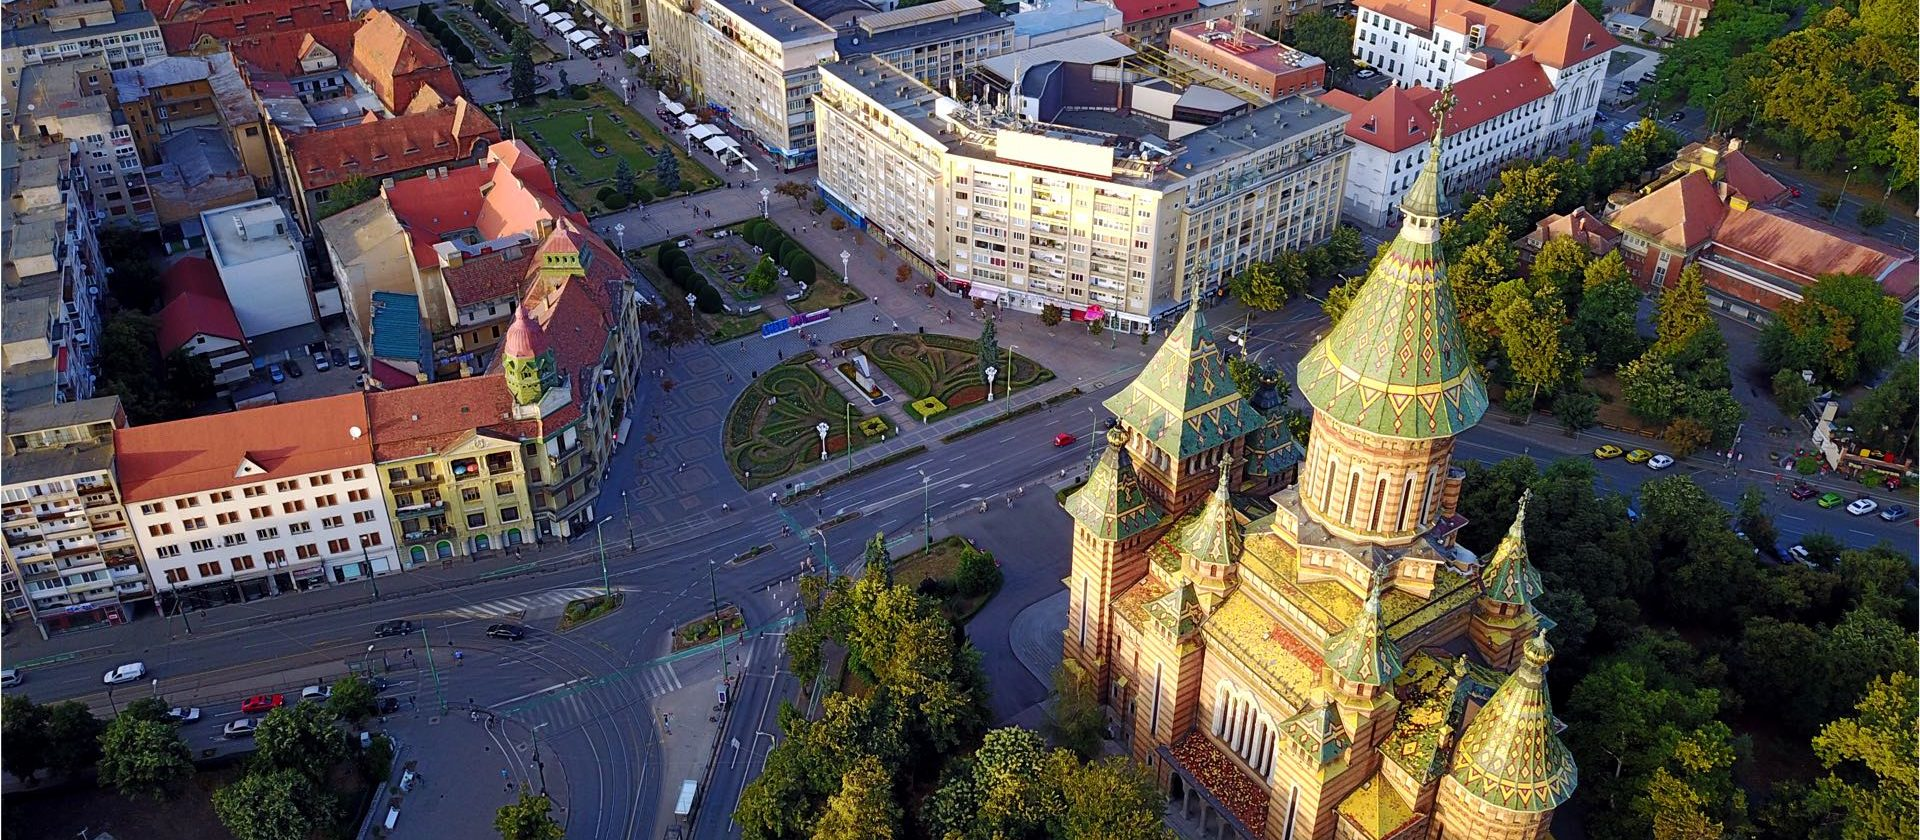 Streets of Timisoara from above, home of Inpsyde WordPress Engineer Róbert Mészáros